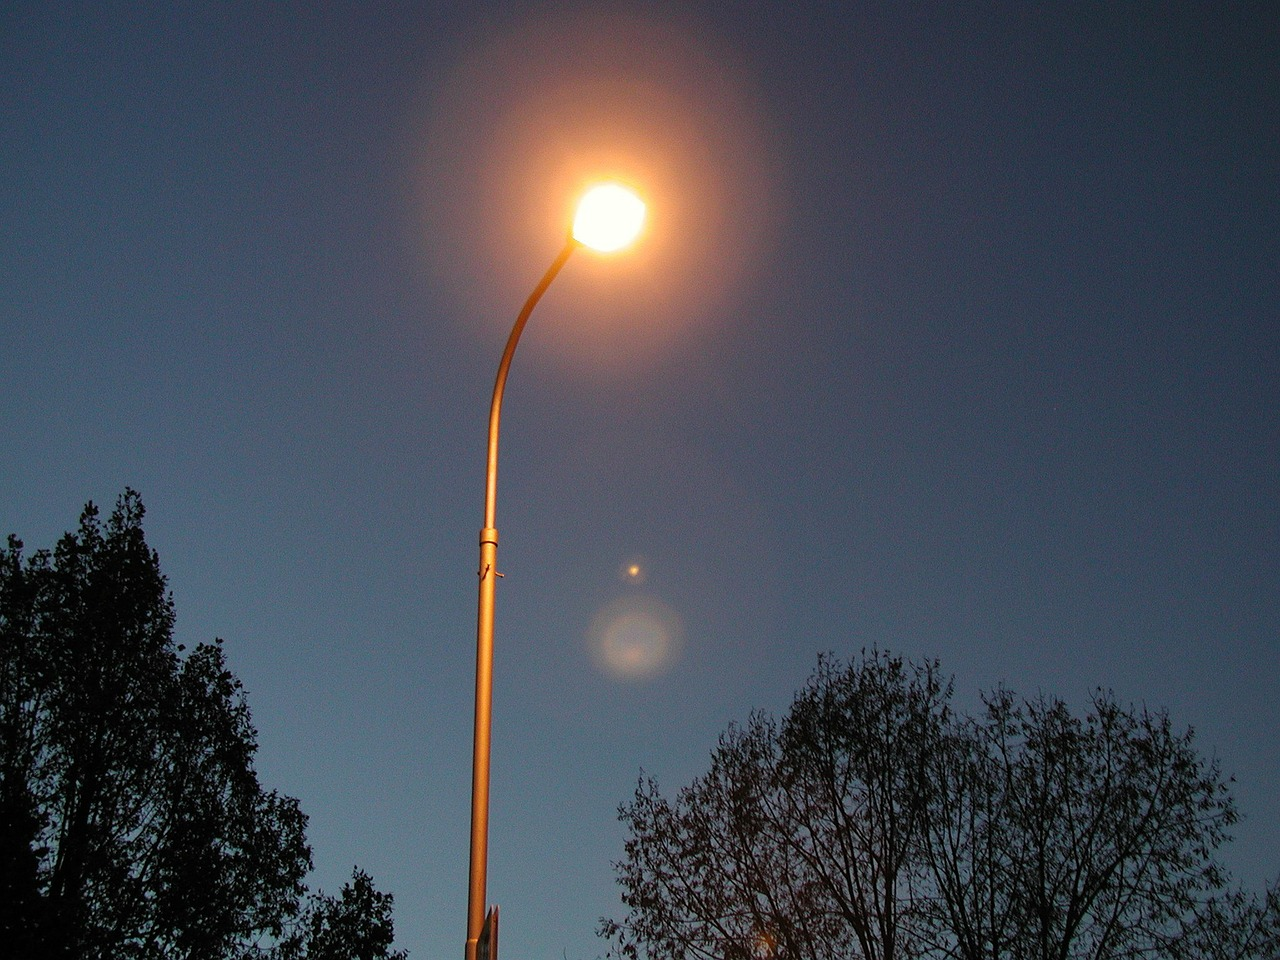 street lamp lamp light free photo